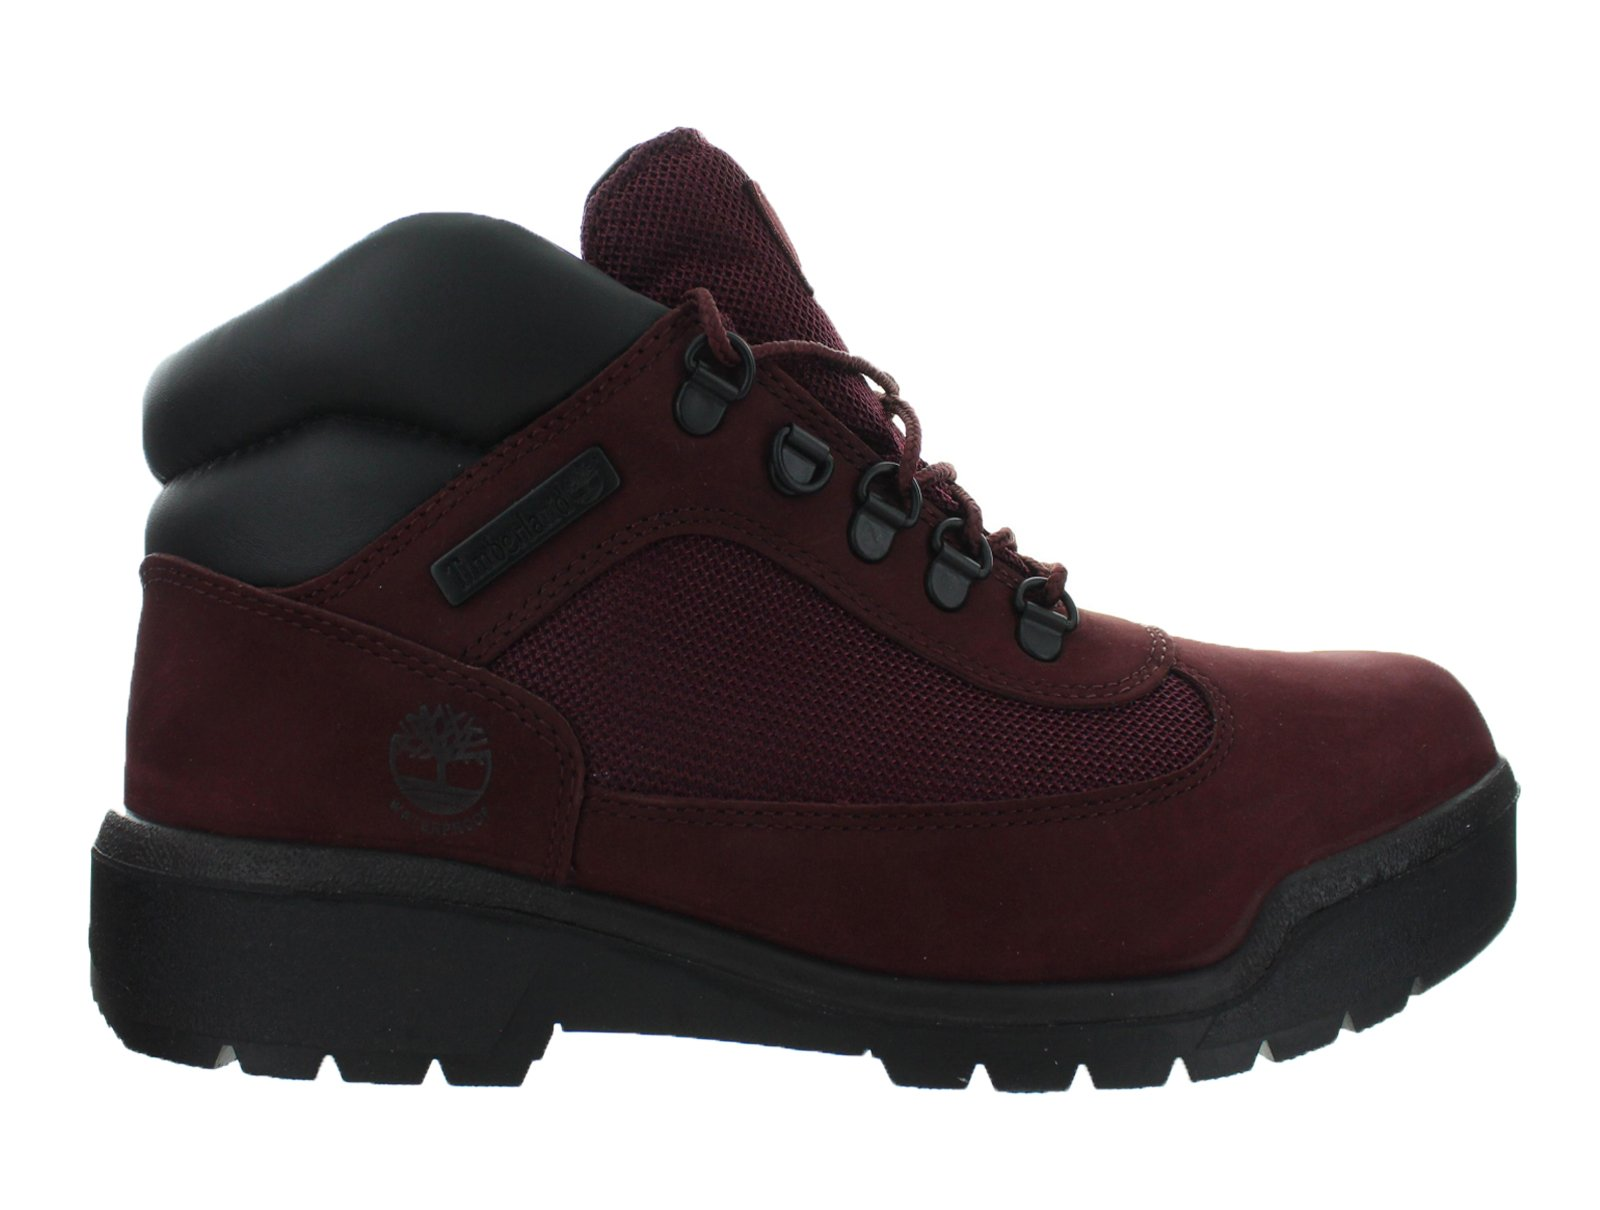 Timberland 6 Inch Waterproof Men's Field Boots Burgundy tb0a1a2u by Timberland